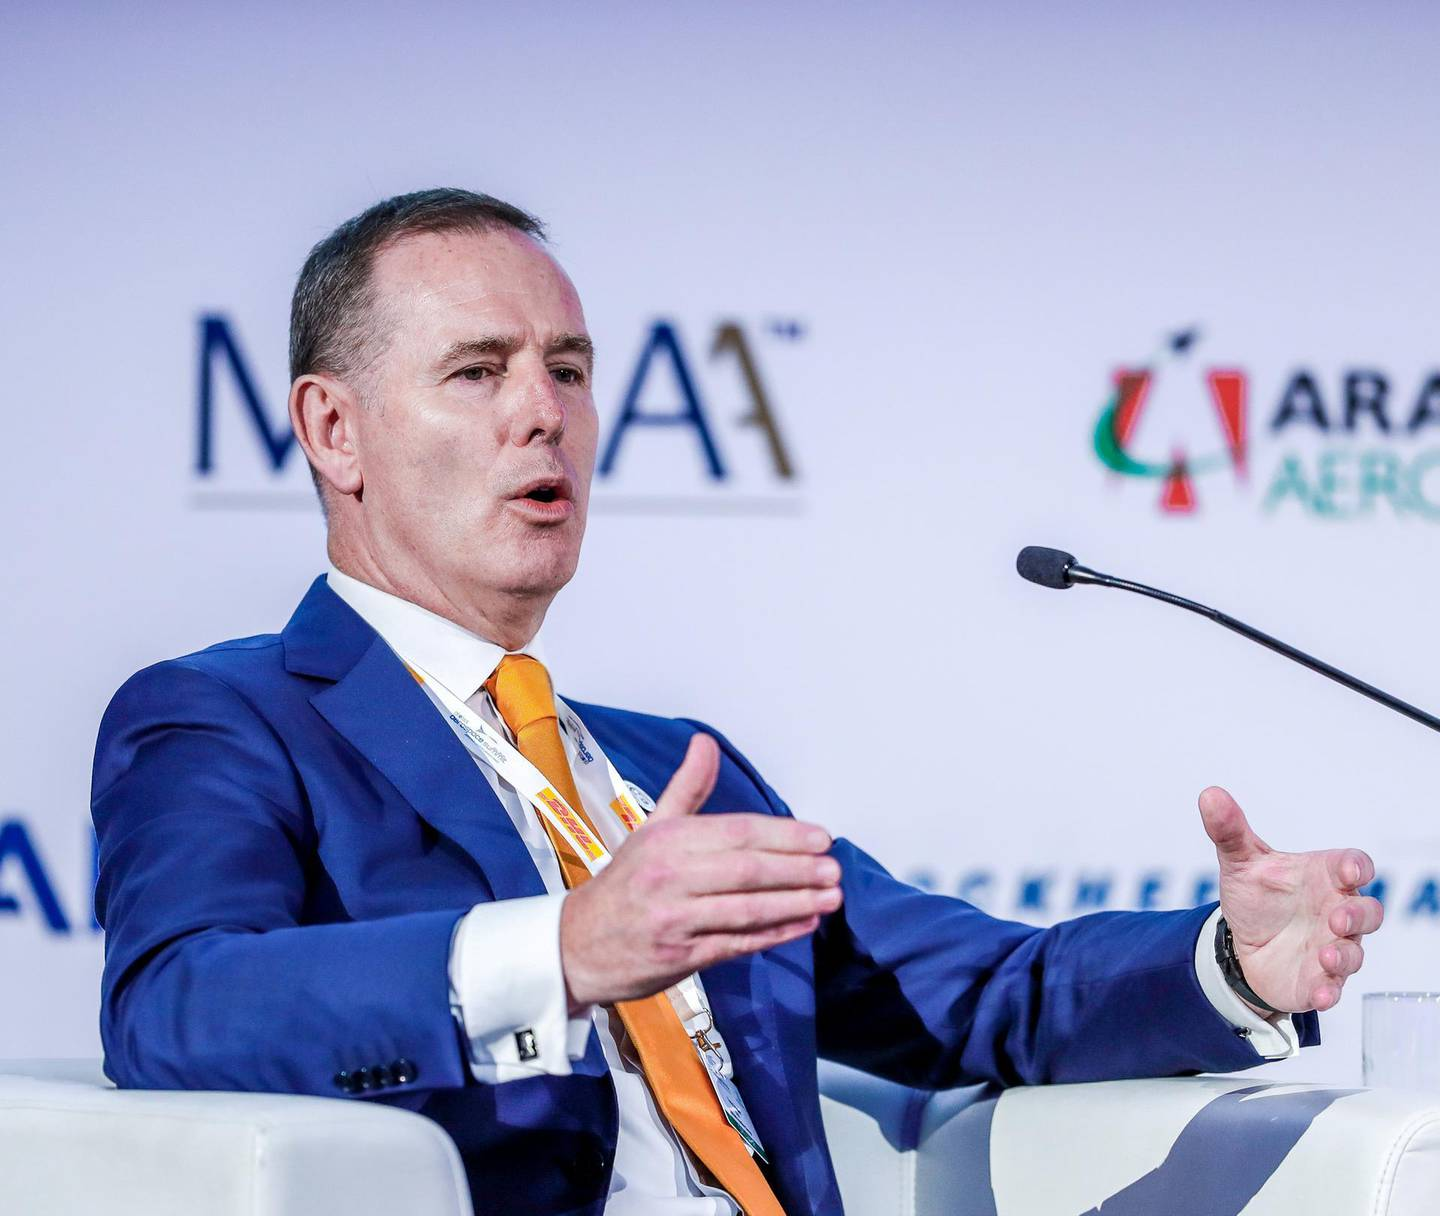 Abu Dhabi, St. Regis Hotel, April 30, 2018.  Global Aerospace Summit.  Tony Douglas, Group CEO, Etihad Aviation Group answers some questions given by the moderator,  Ivan Gale, Associate Director, Government and IndustryEngagement, Boeing International.Victor Besa / The NationalBusinessReporter:  Deena Kamel Yousef